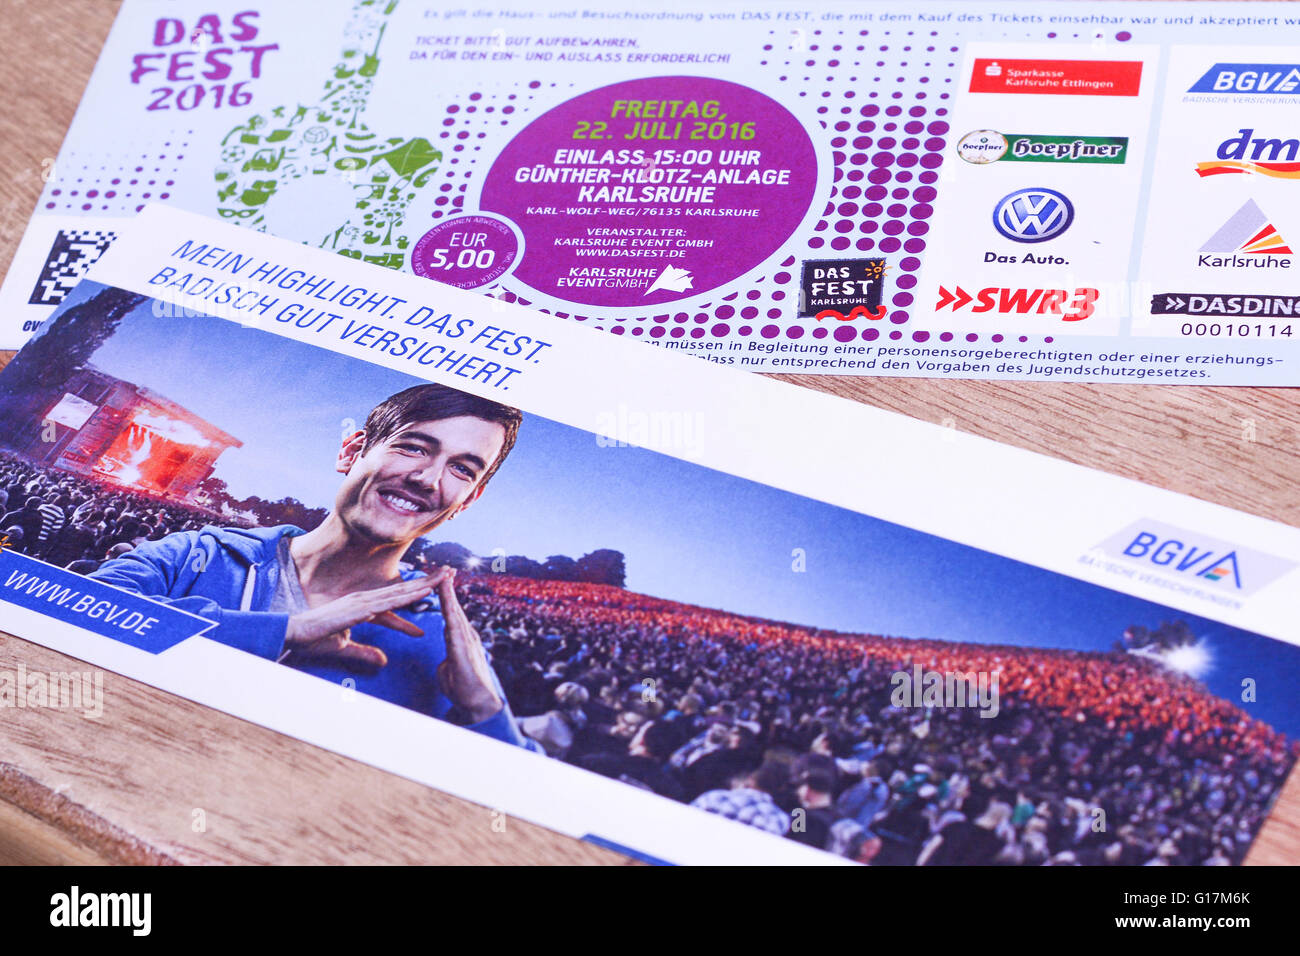 Karlsruhe, Baden Wuerttemberg, Germany - April 11, 2016: Tickets to Das Fest 2016, The festival is one of the largest - Stock Image